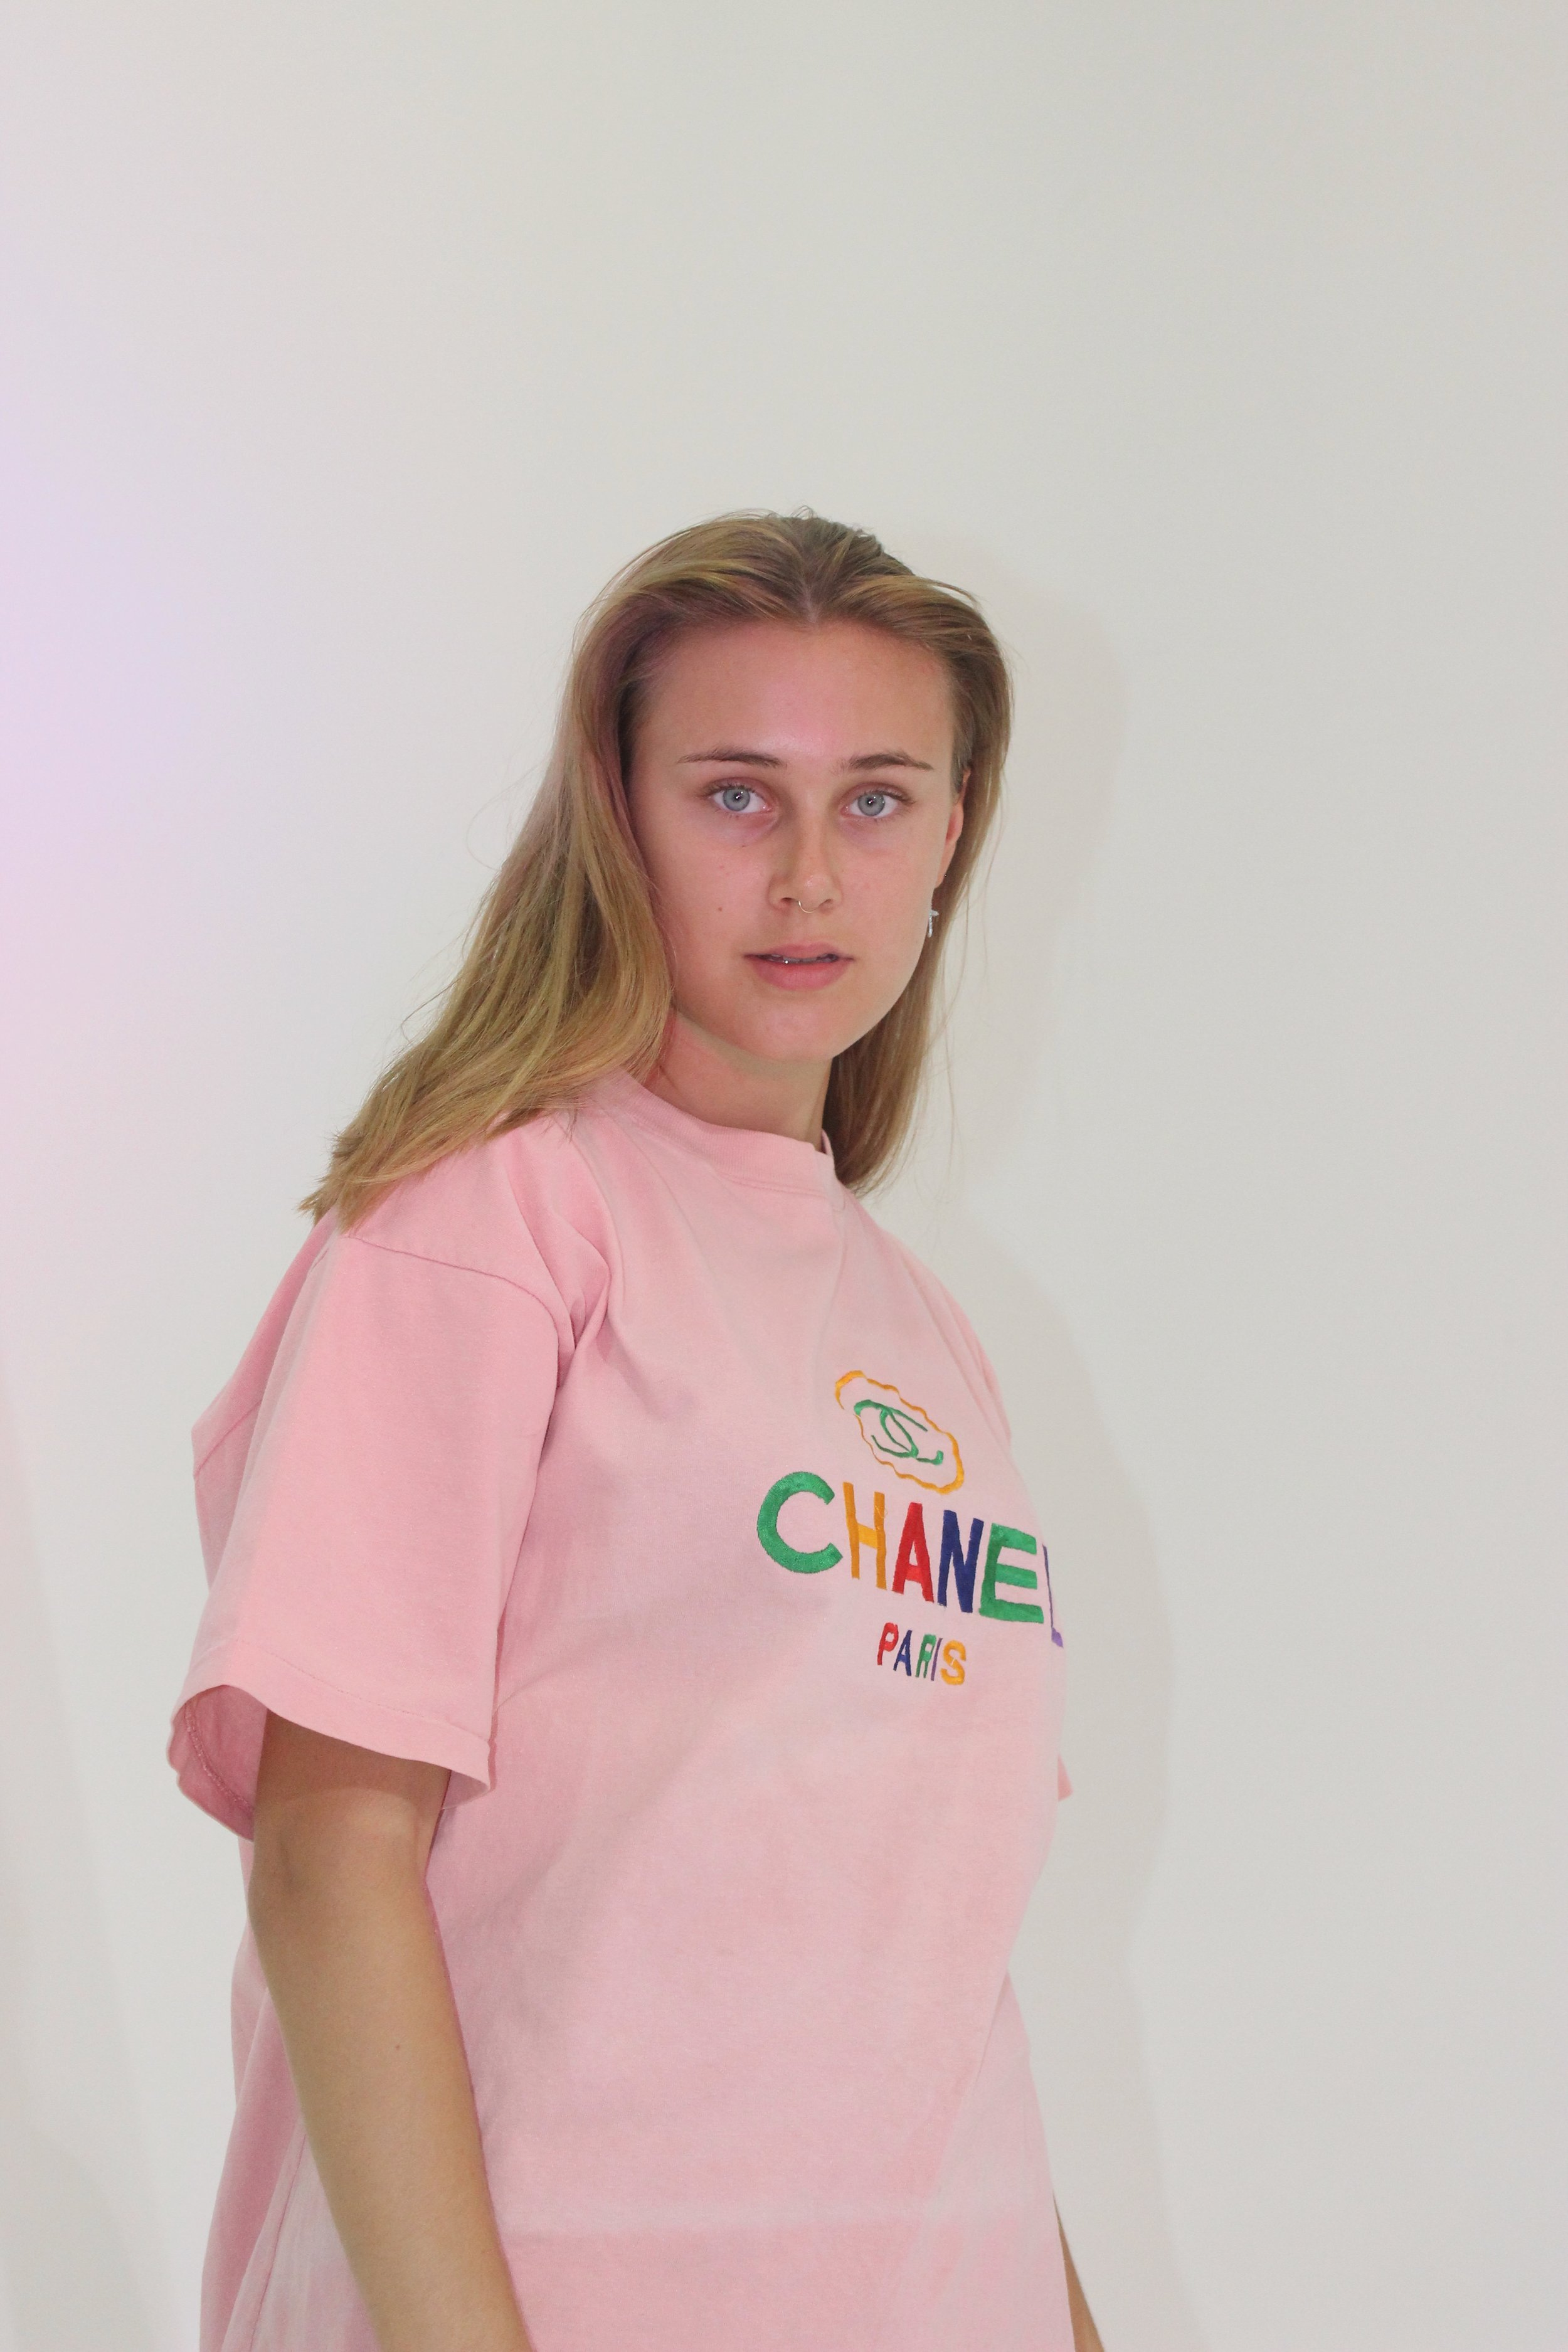 Charlie - Actress and Model